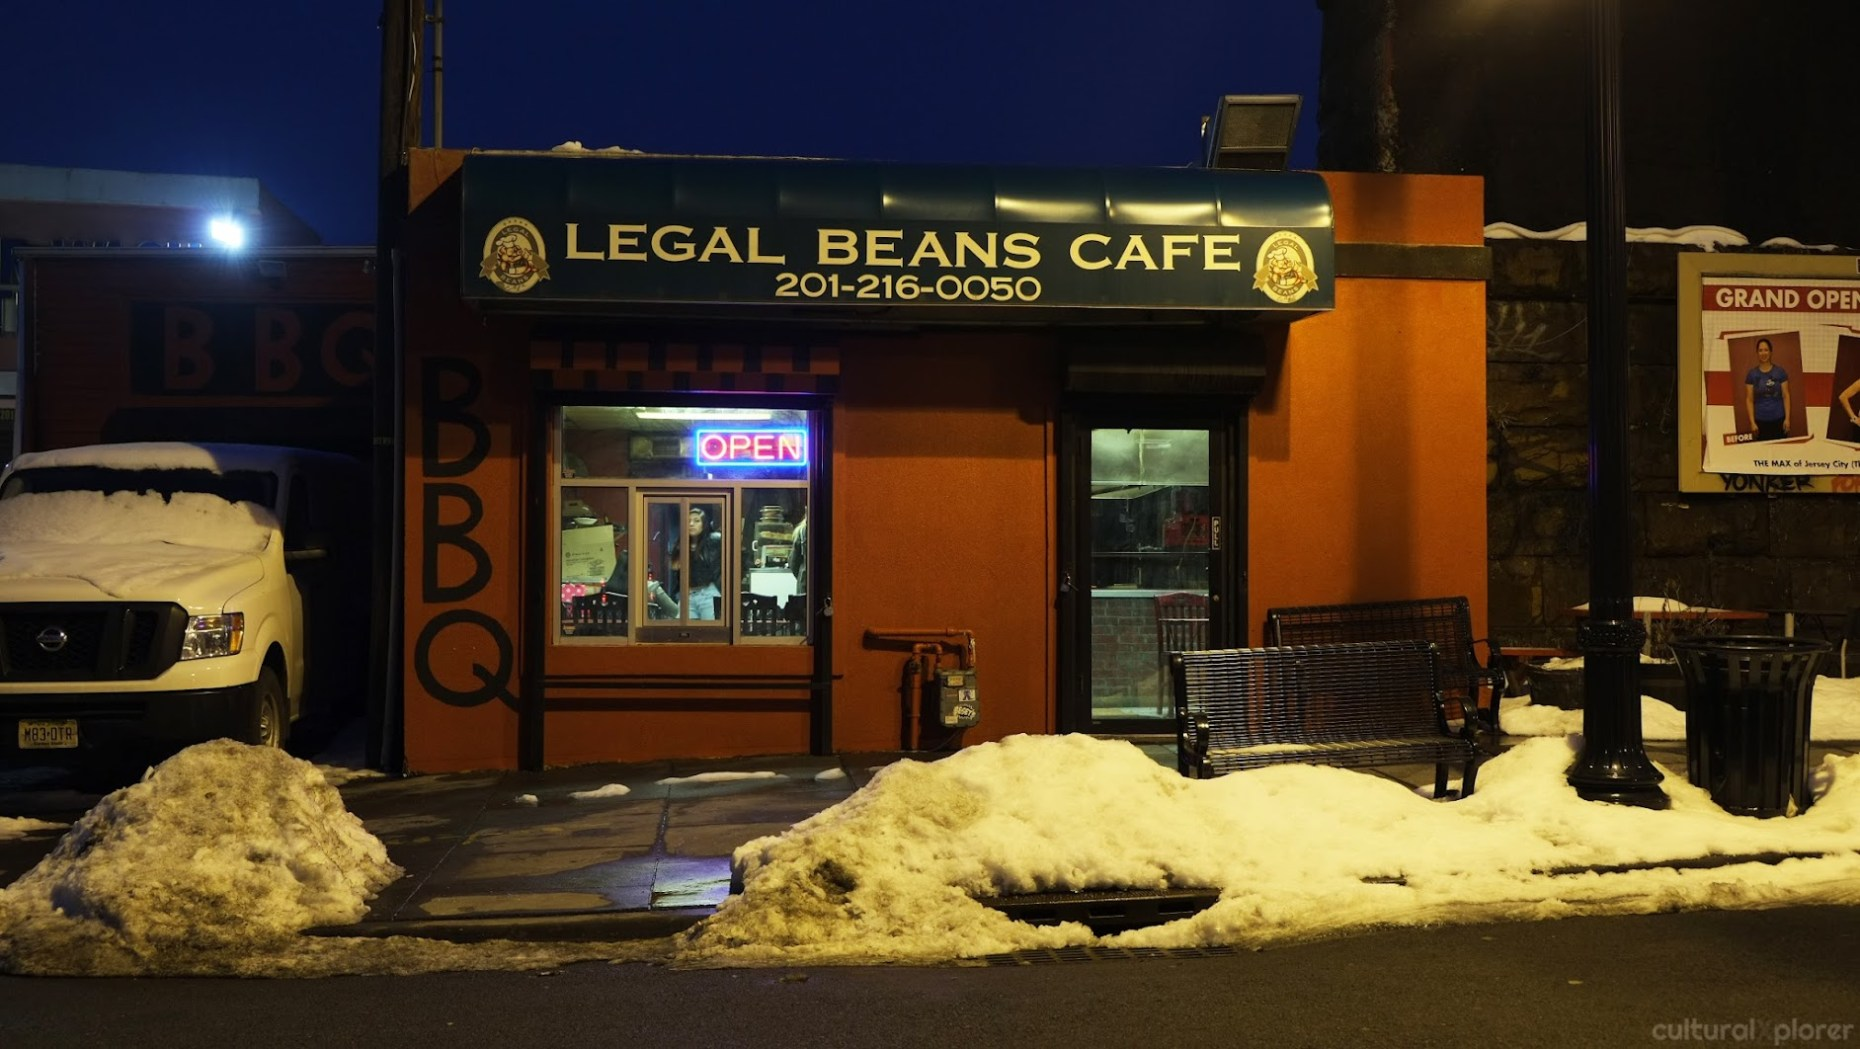 Legal Beans Cafe